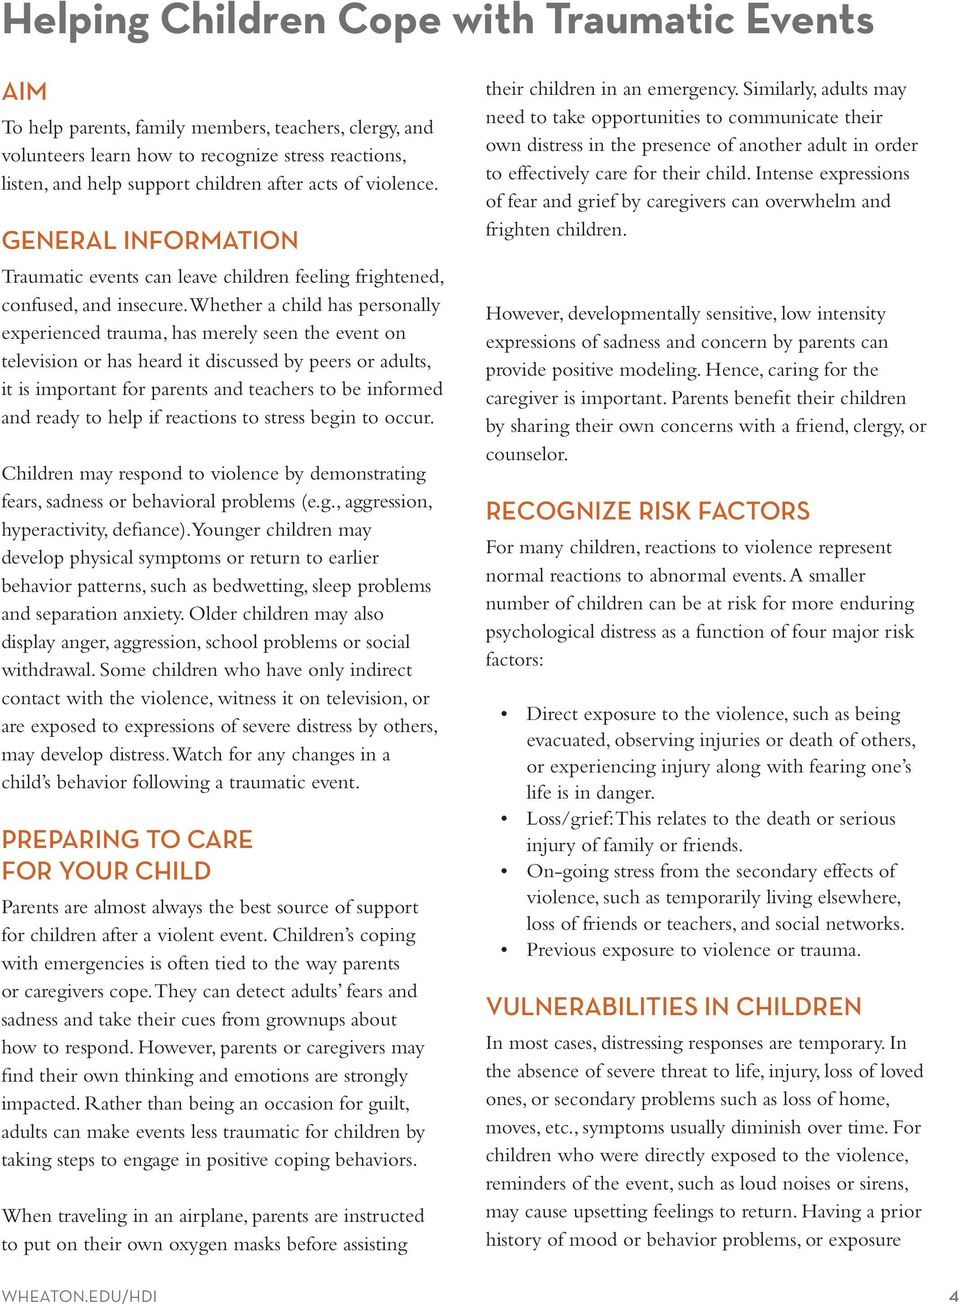 HELPING CHILDREN COPE WITH TRAUMATIC EVENTS - PDF